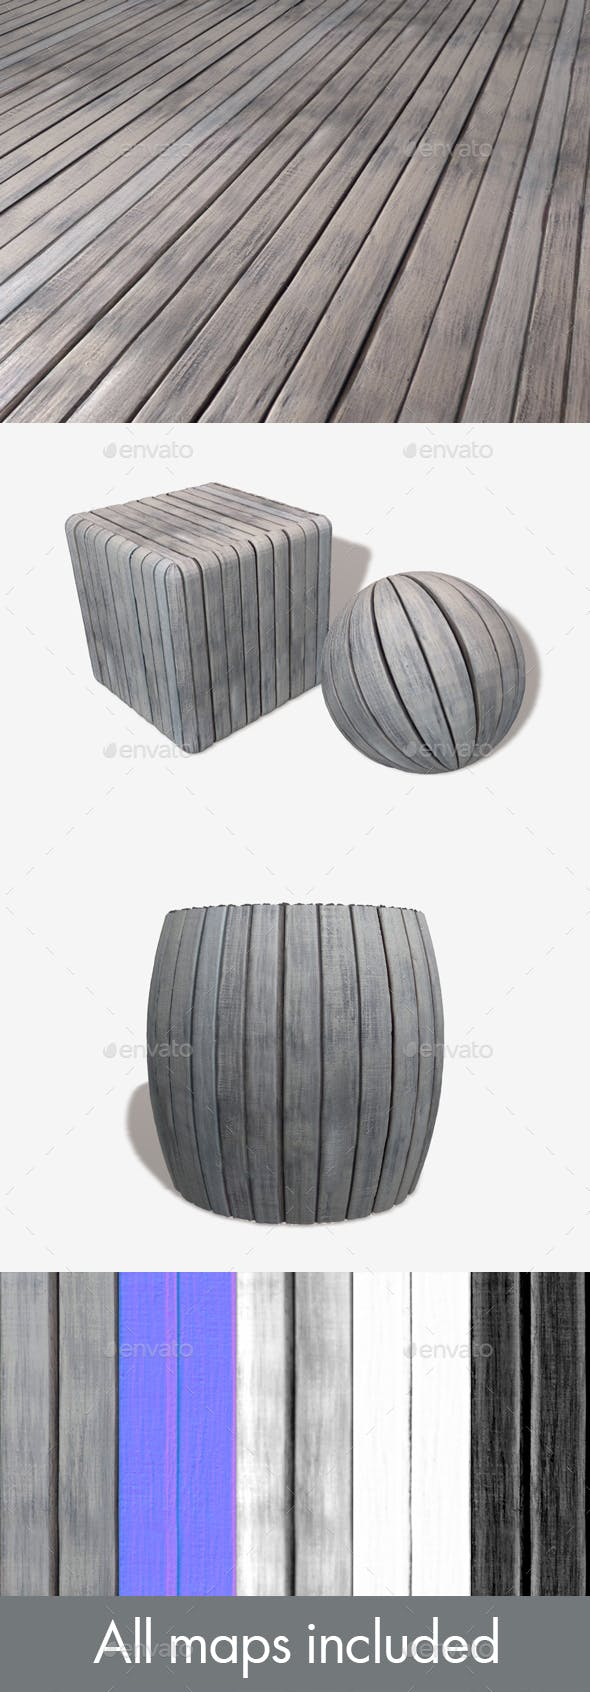 Grey Wooden Planks Seamless Texture - 3DOcean Item for Sale